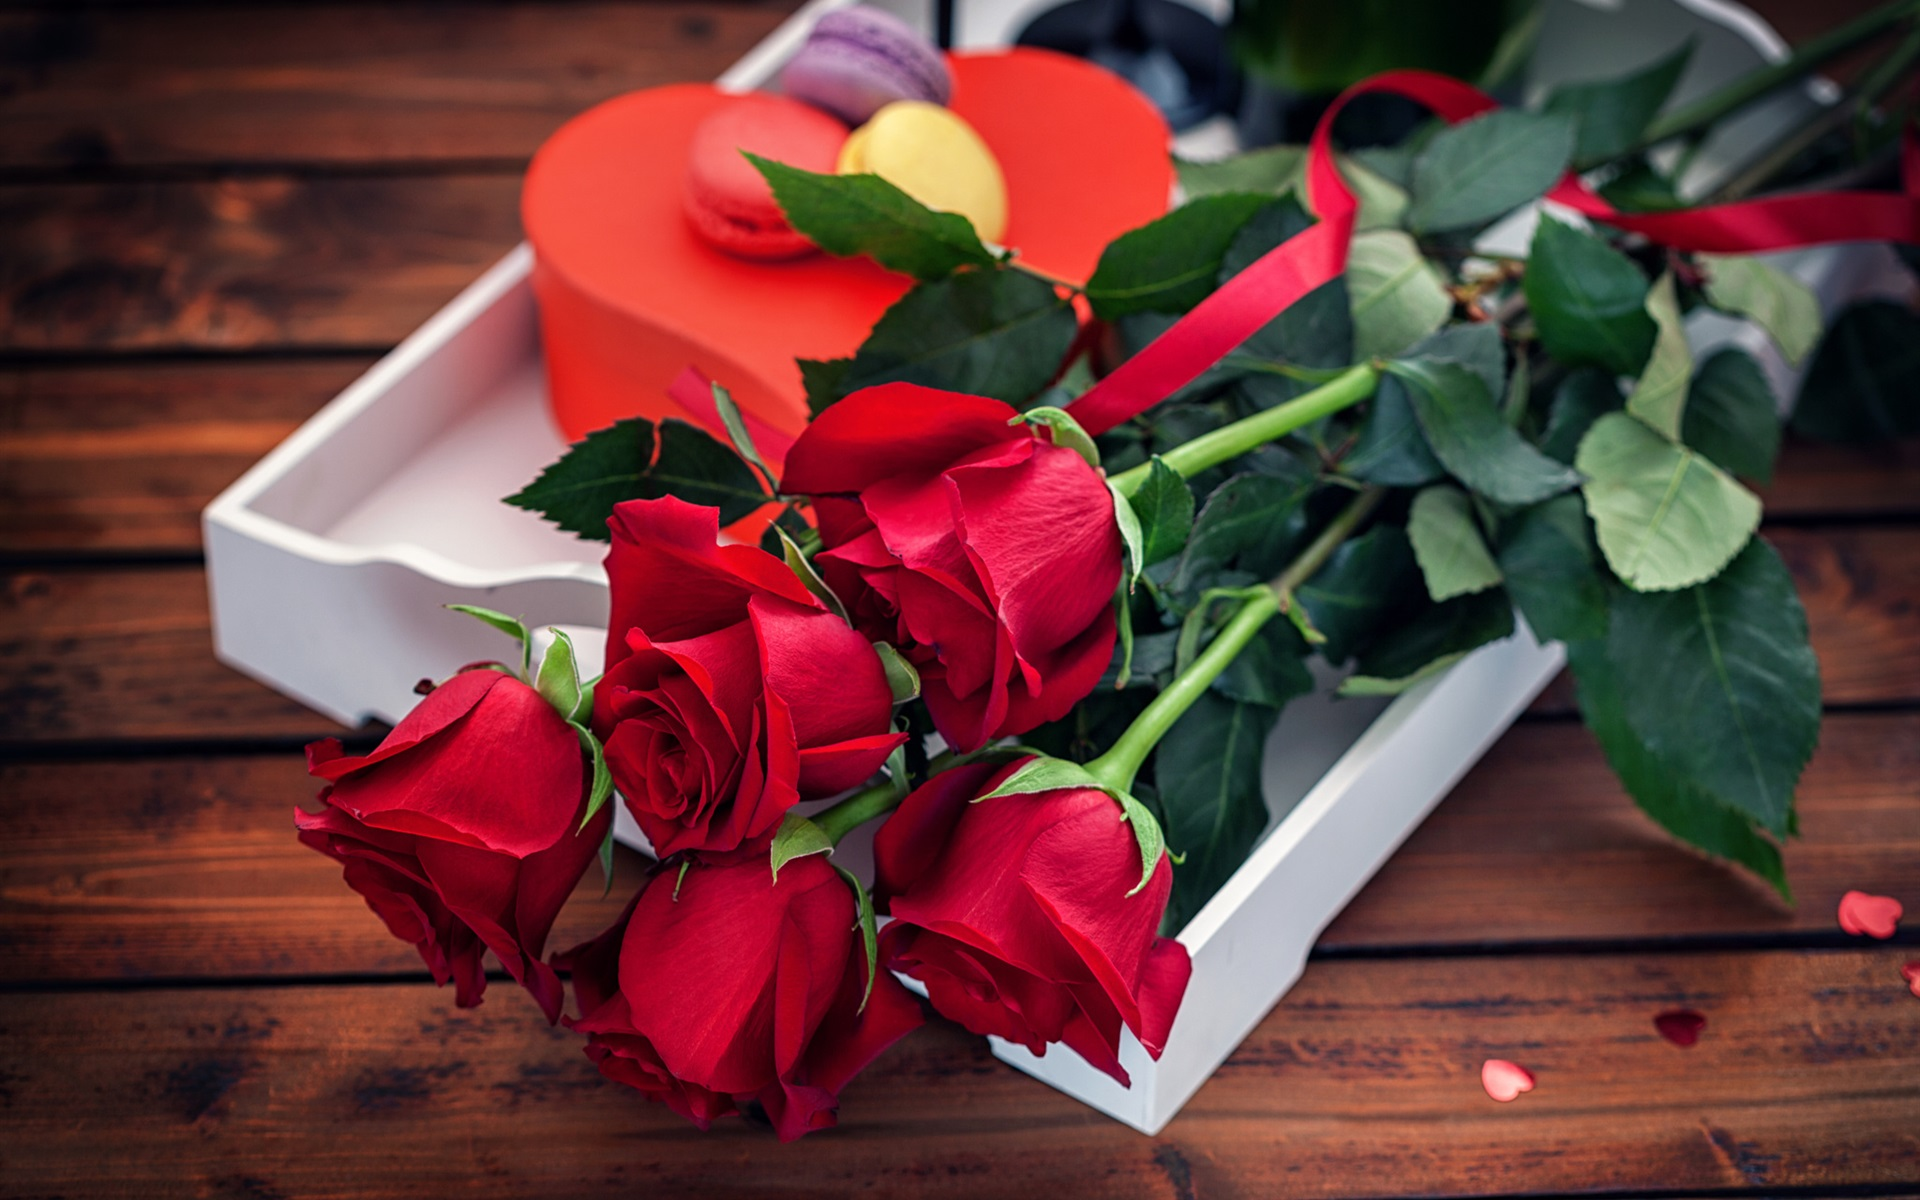 Wallpaper Red Rose Flowers Bouquet Gift Romantic 1920x1200 Hd